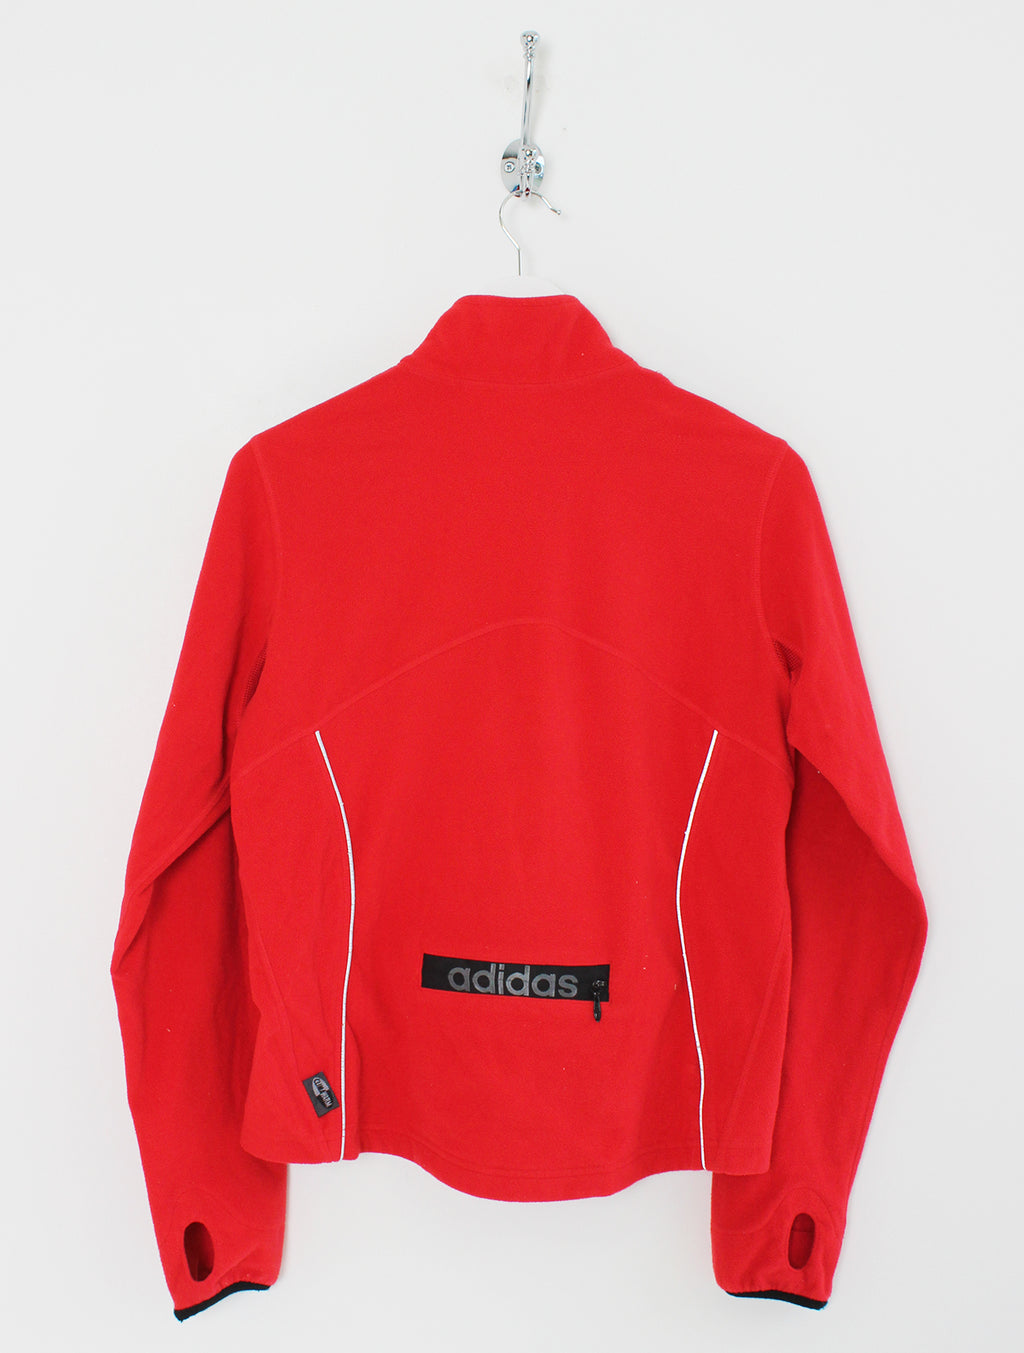 Women's Adidas Fleece (M)